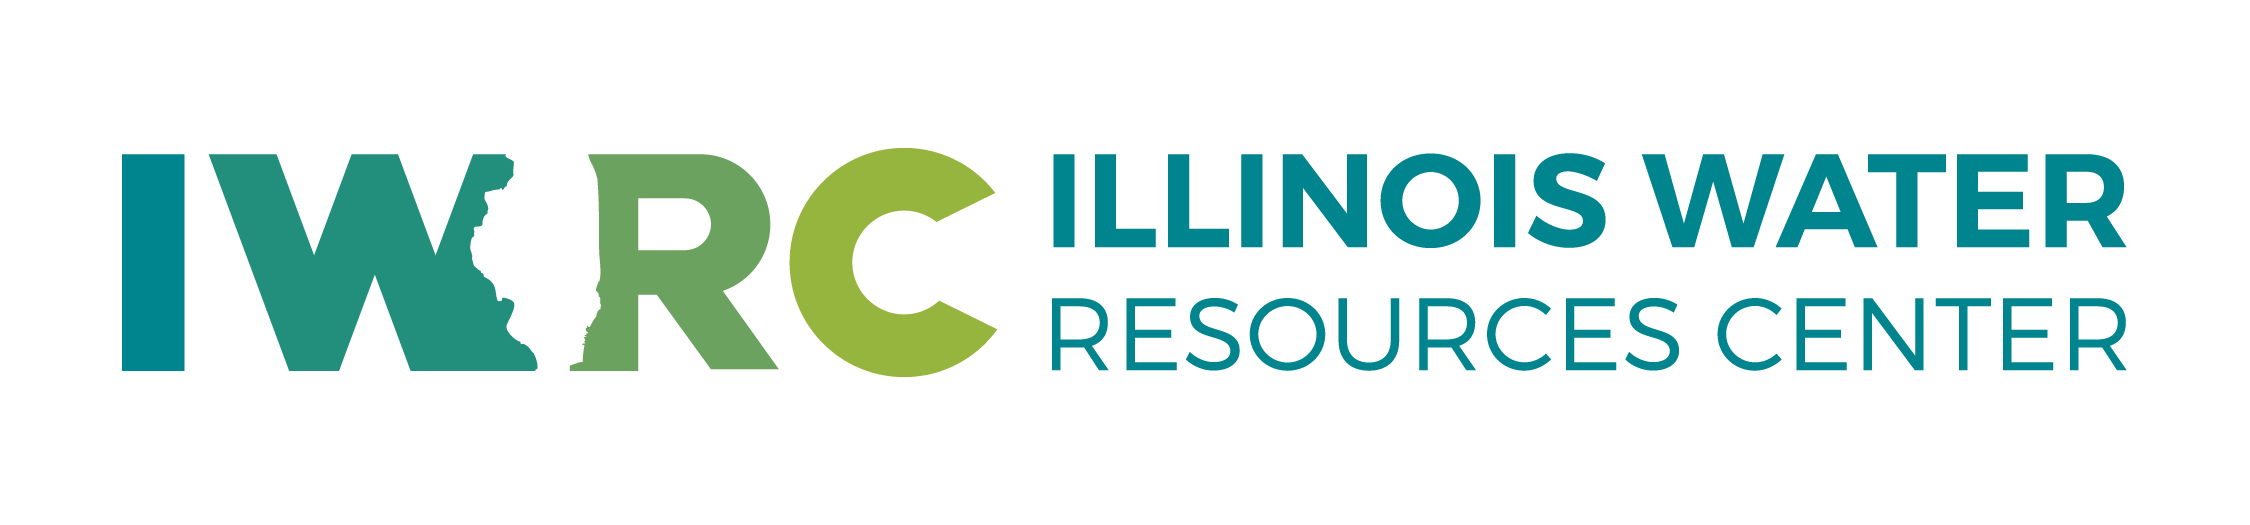 Illinois Water Resources Center